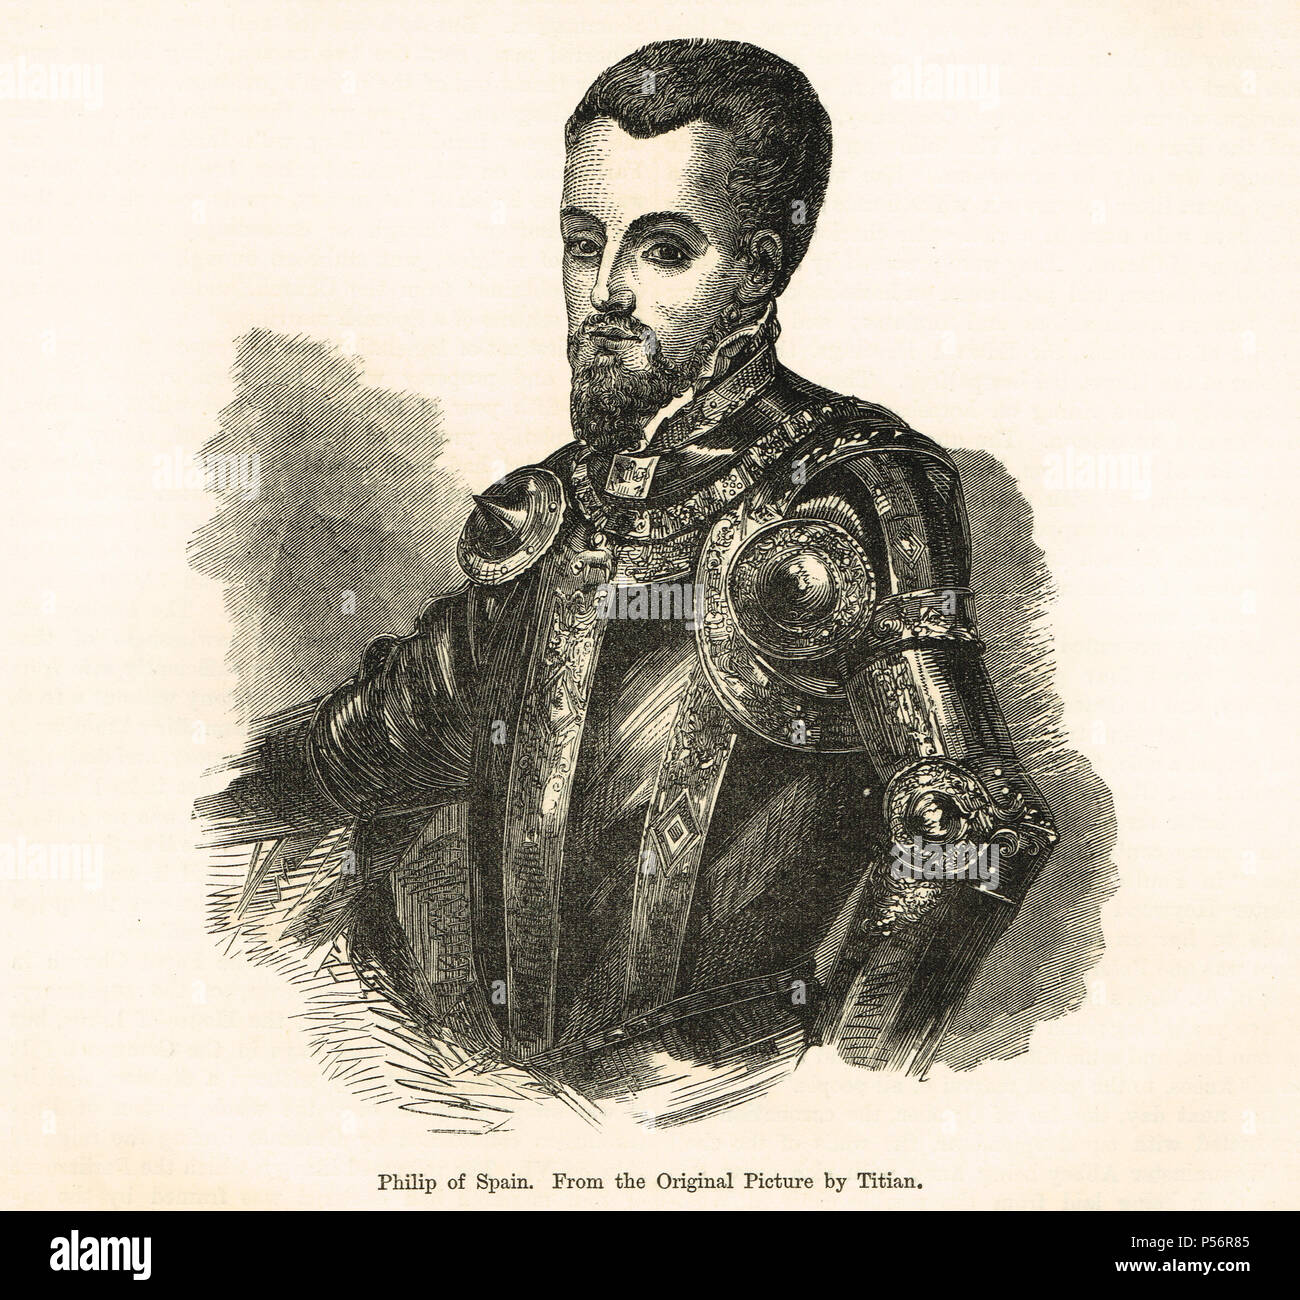 King Philip II of Spain, Felipe II, called the Prudent, el Prudente, King of Spain, King of Portugal, King of Naples and Sicily, jure uxoris King of England and Ireland as co ruler with Queen Mary I Stock Photo